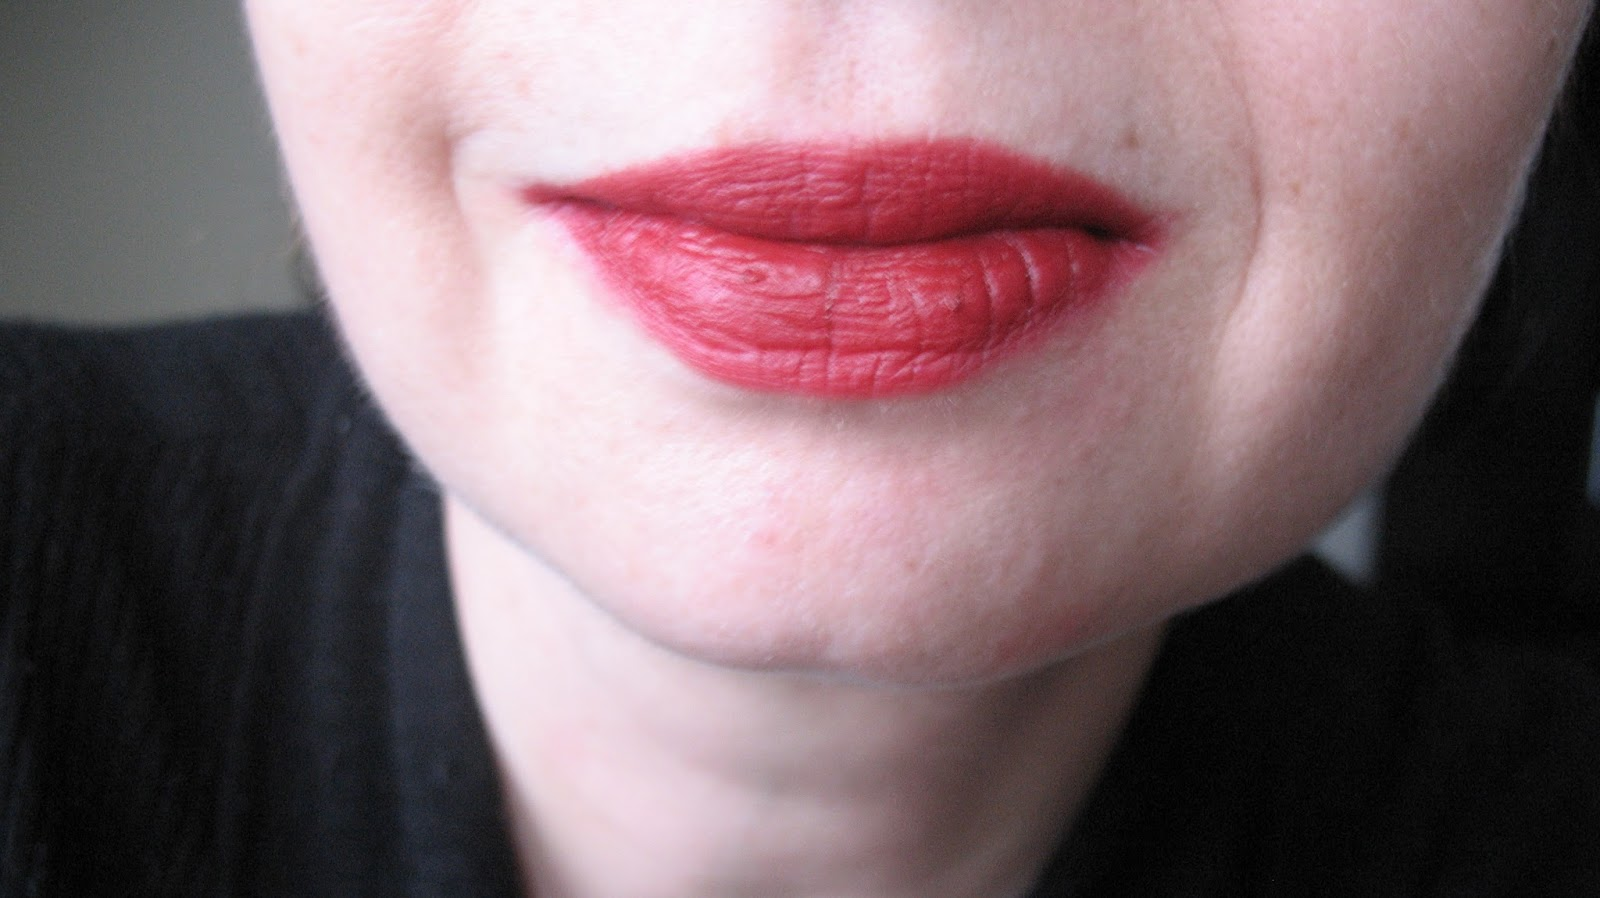 MAC-Viva-Glam-I-Lipstick-review-08